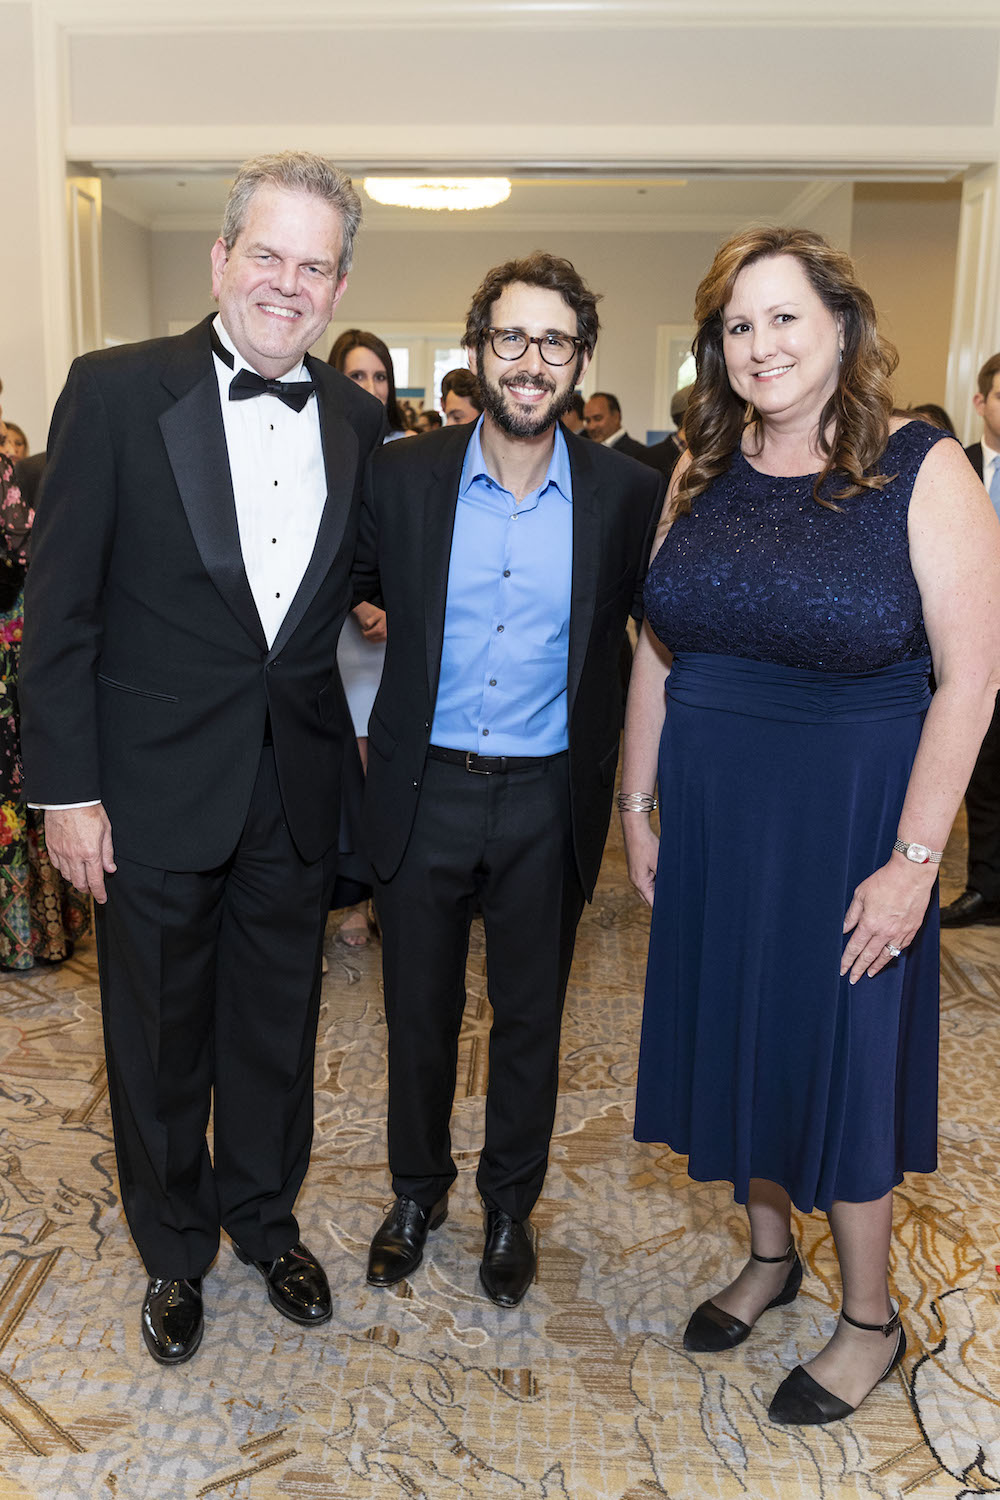 Curtis Priem, Josh Groban and Veronica Priem